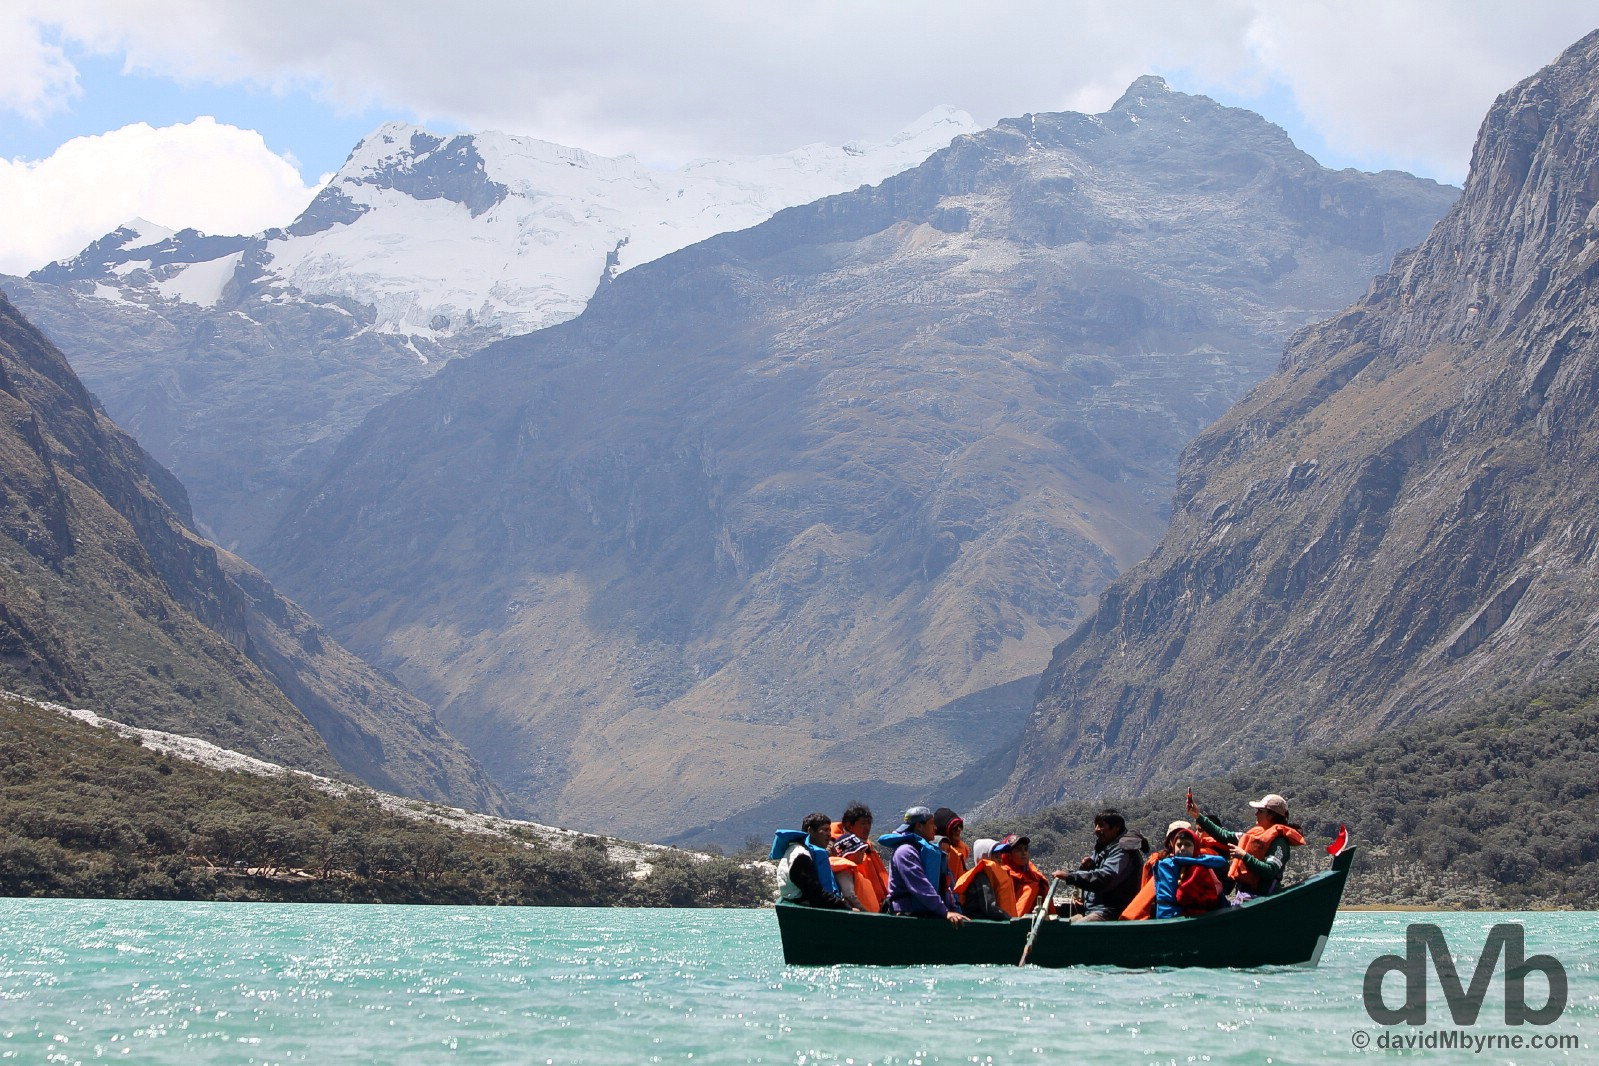 Boating on Lago (Lake) Chinan Cocha in Parque Nacional Huascaran, Ancash, Peru. August 5, 2015.